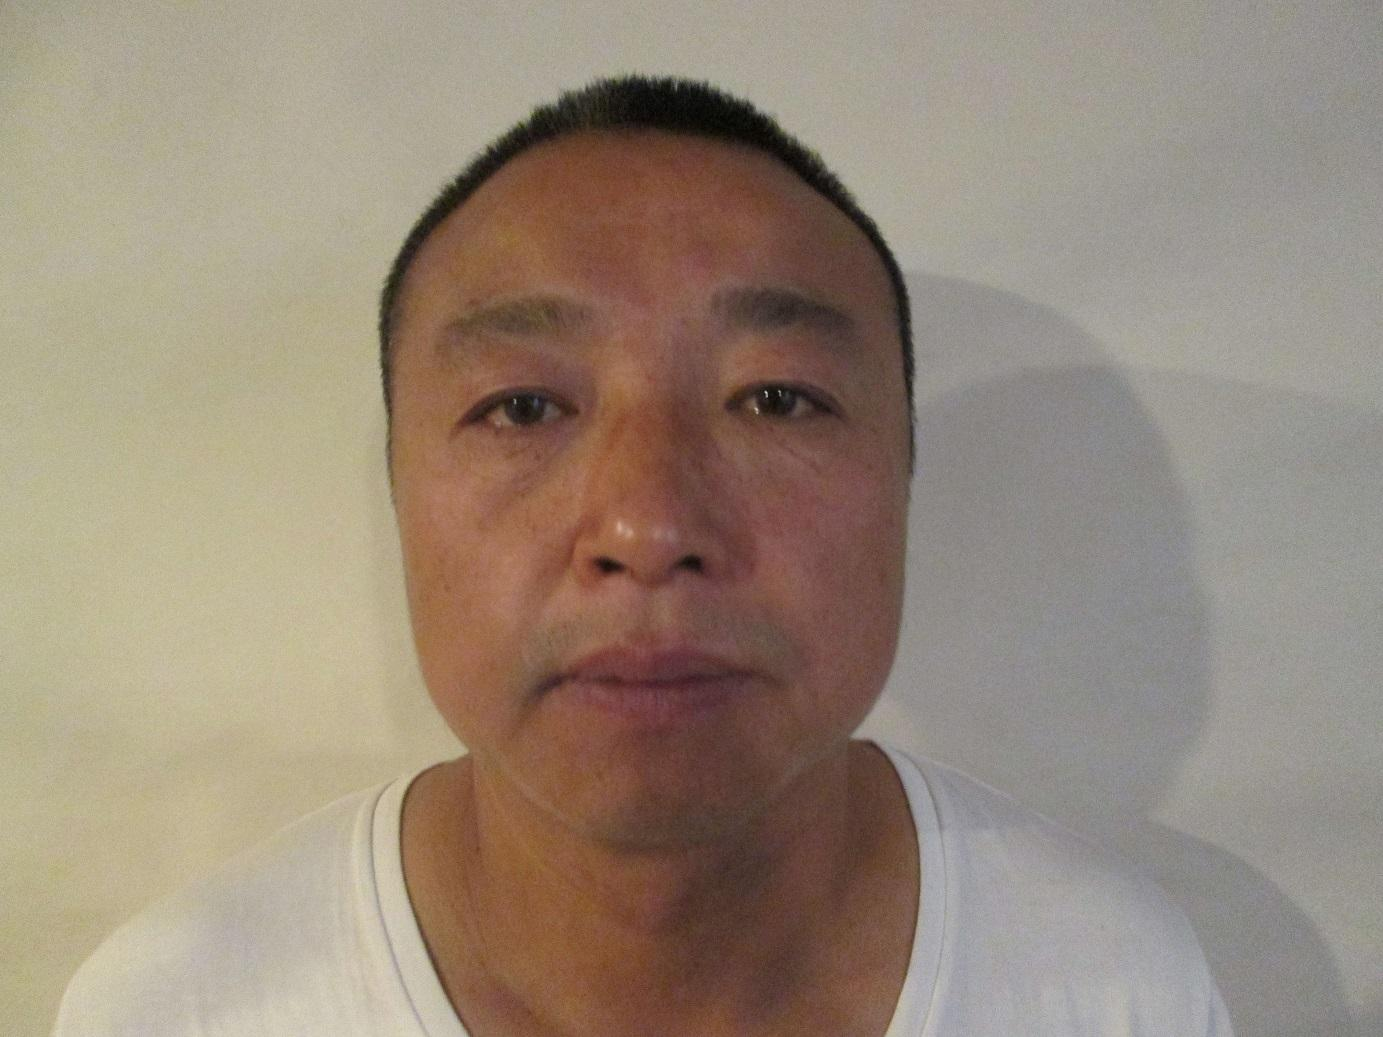 Xia Ofeng Wang was arrested by RISP after police seized $60,000 worth of pot from the car he was driving. (Police photo)<p></p>